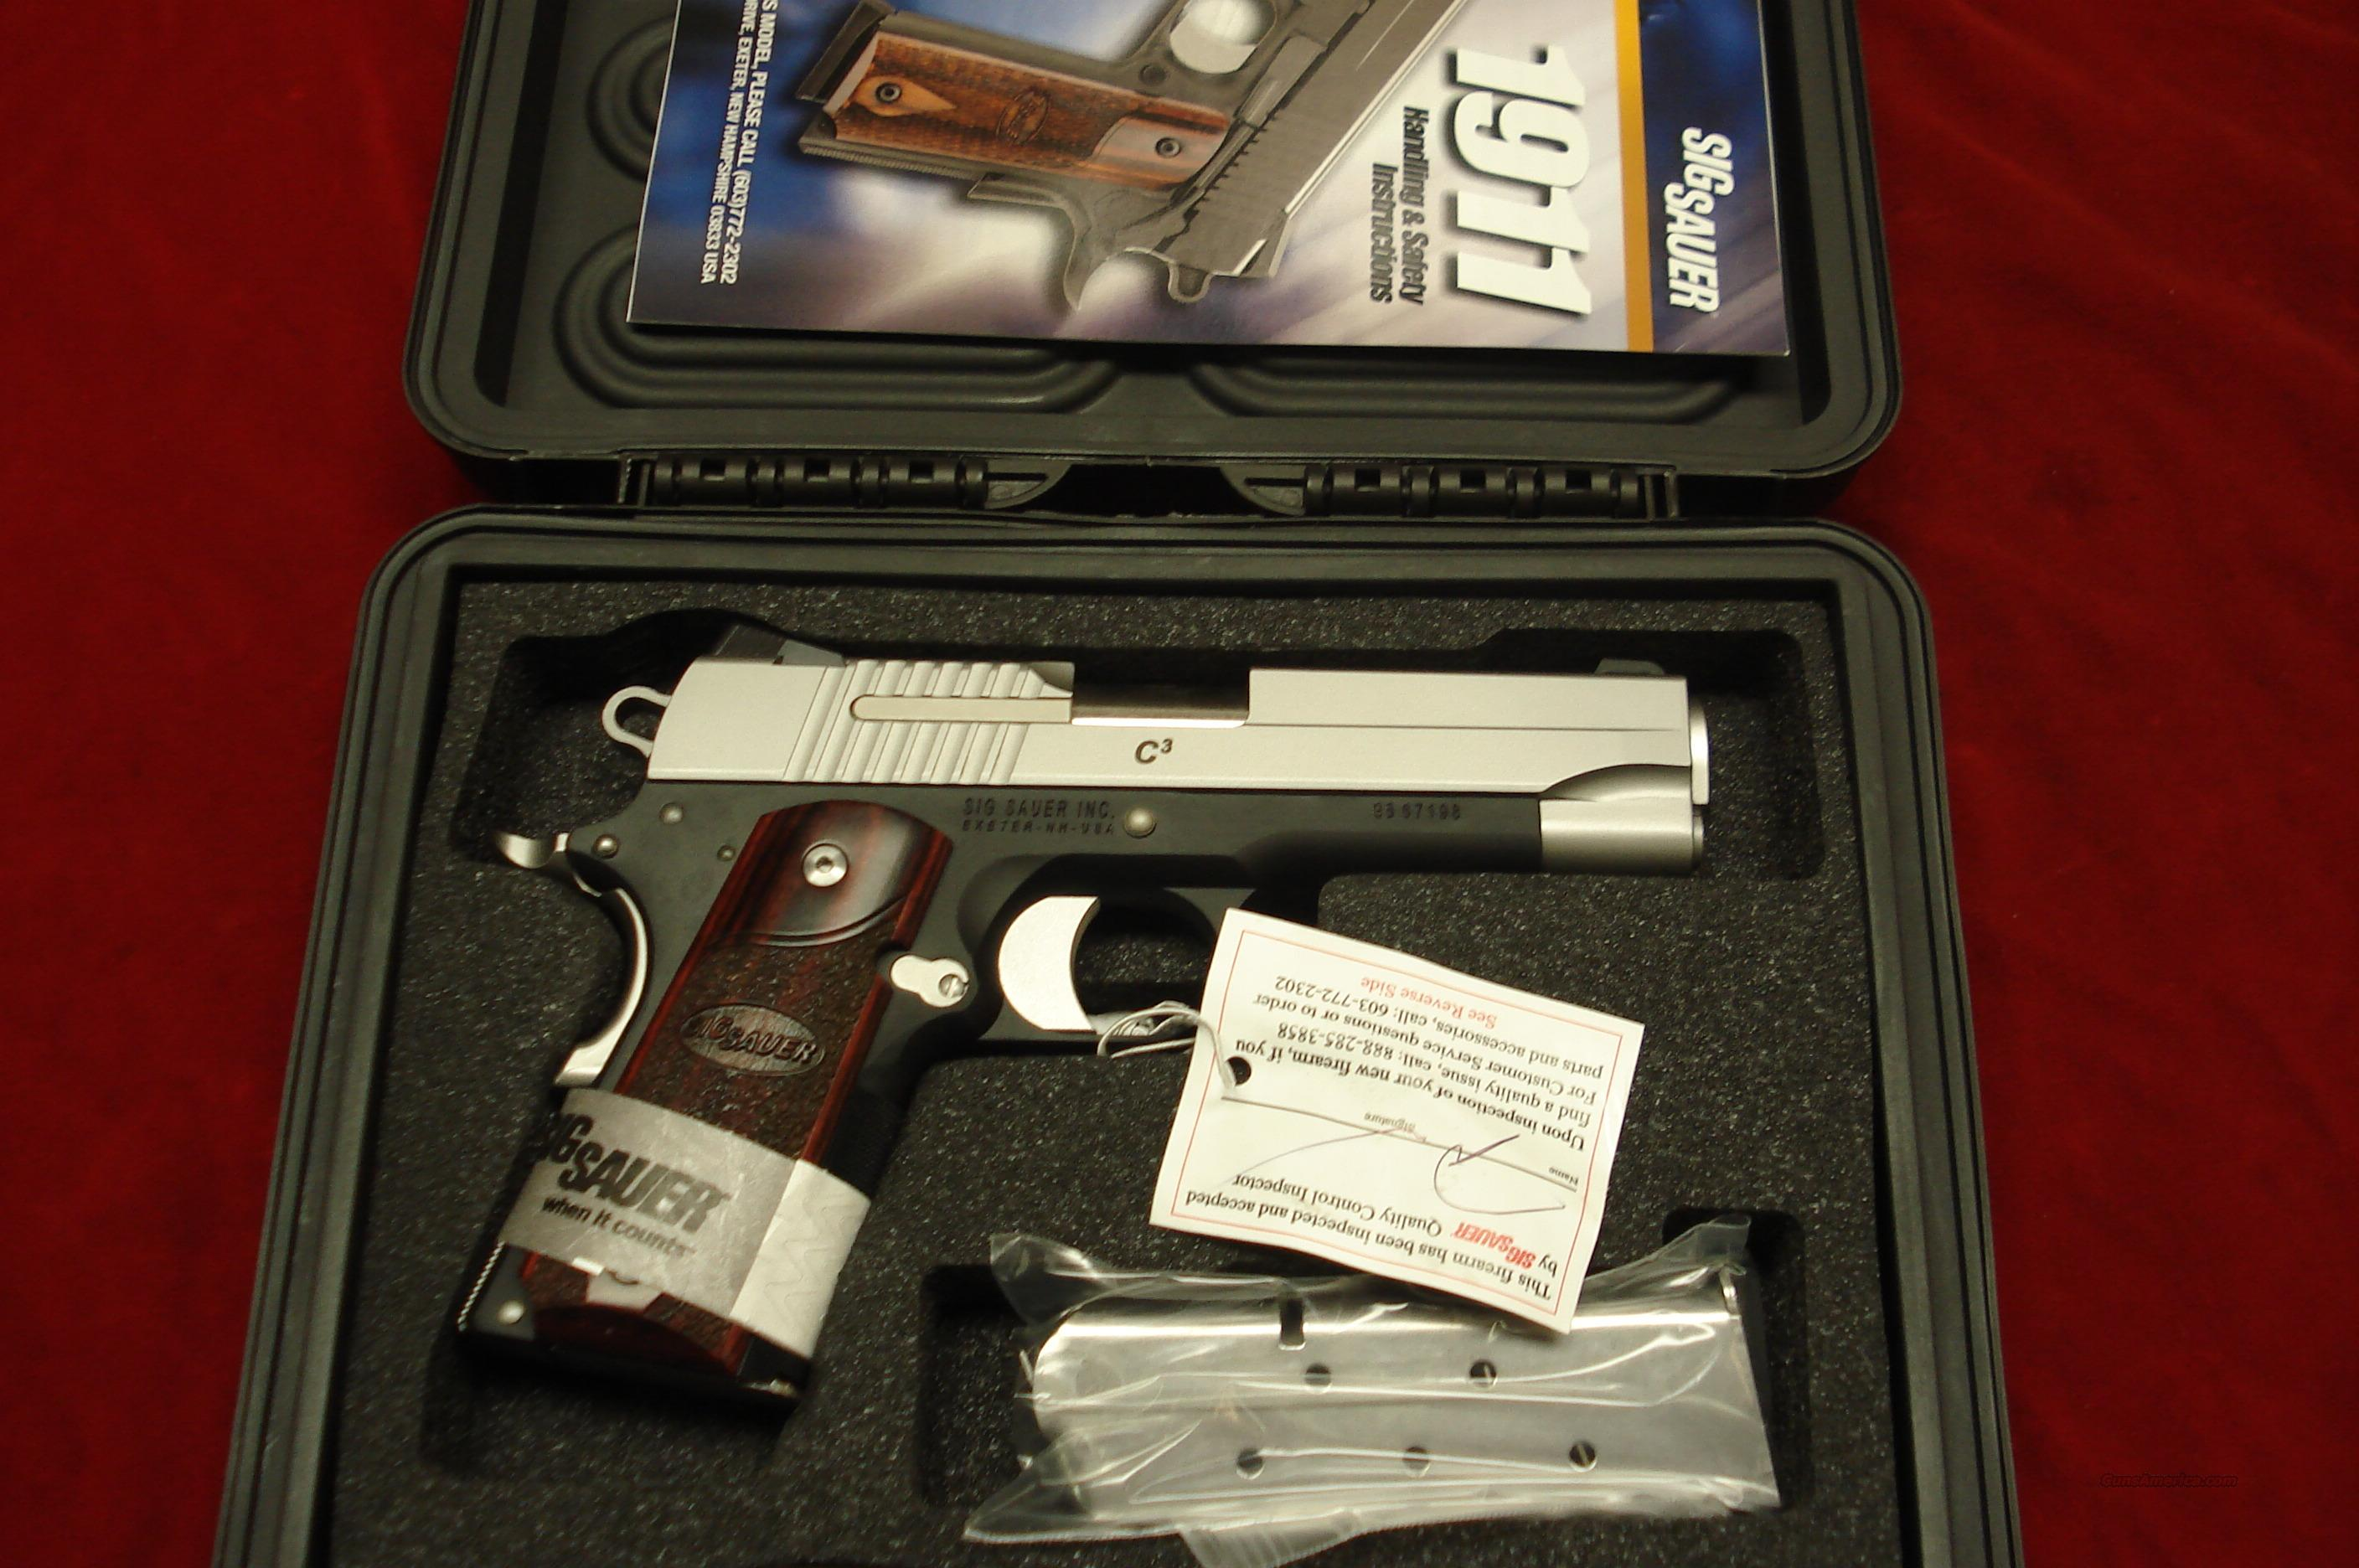 SIG SAUER 1911 COMPACT TWO-TONE 45CAL.  NEW  Guns > Pistols > Sig - Sauer/Sigarms Pistols > 1911